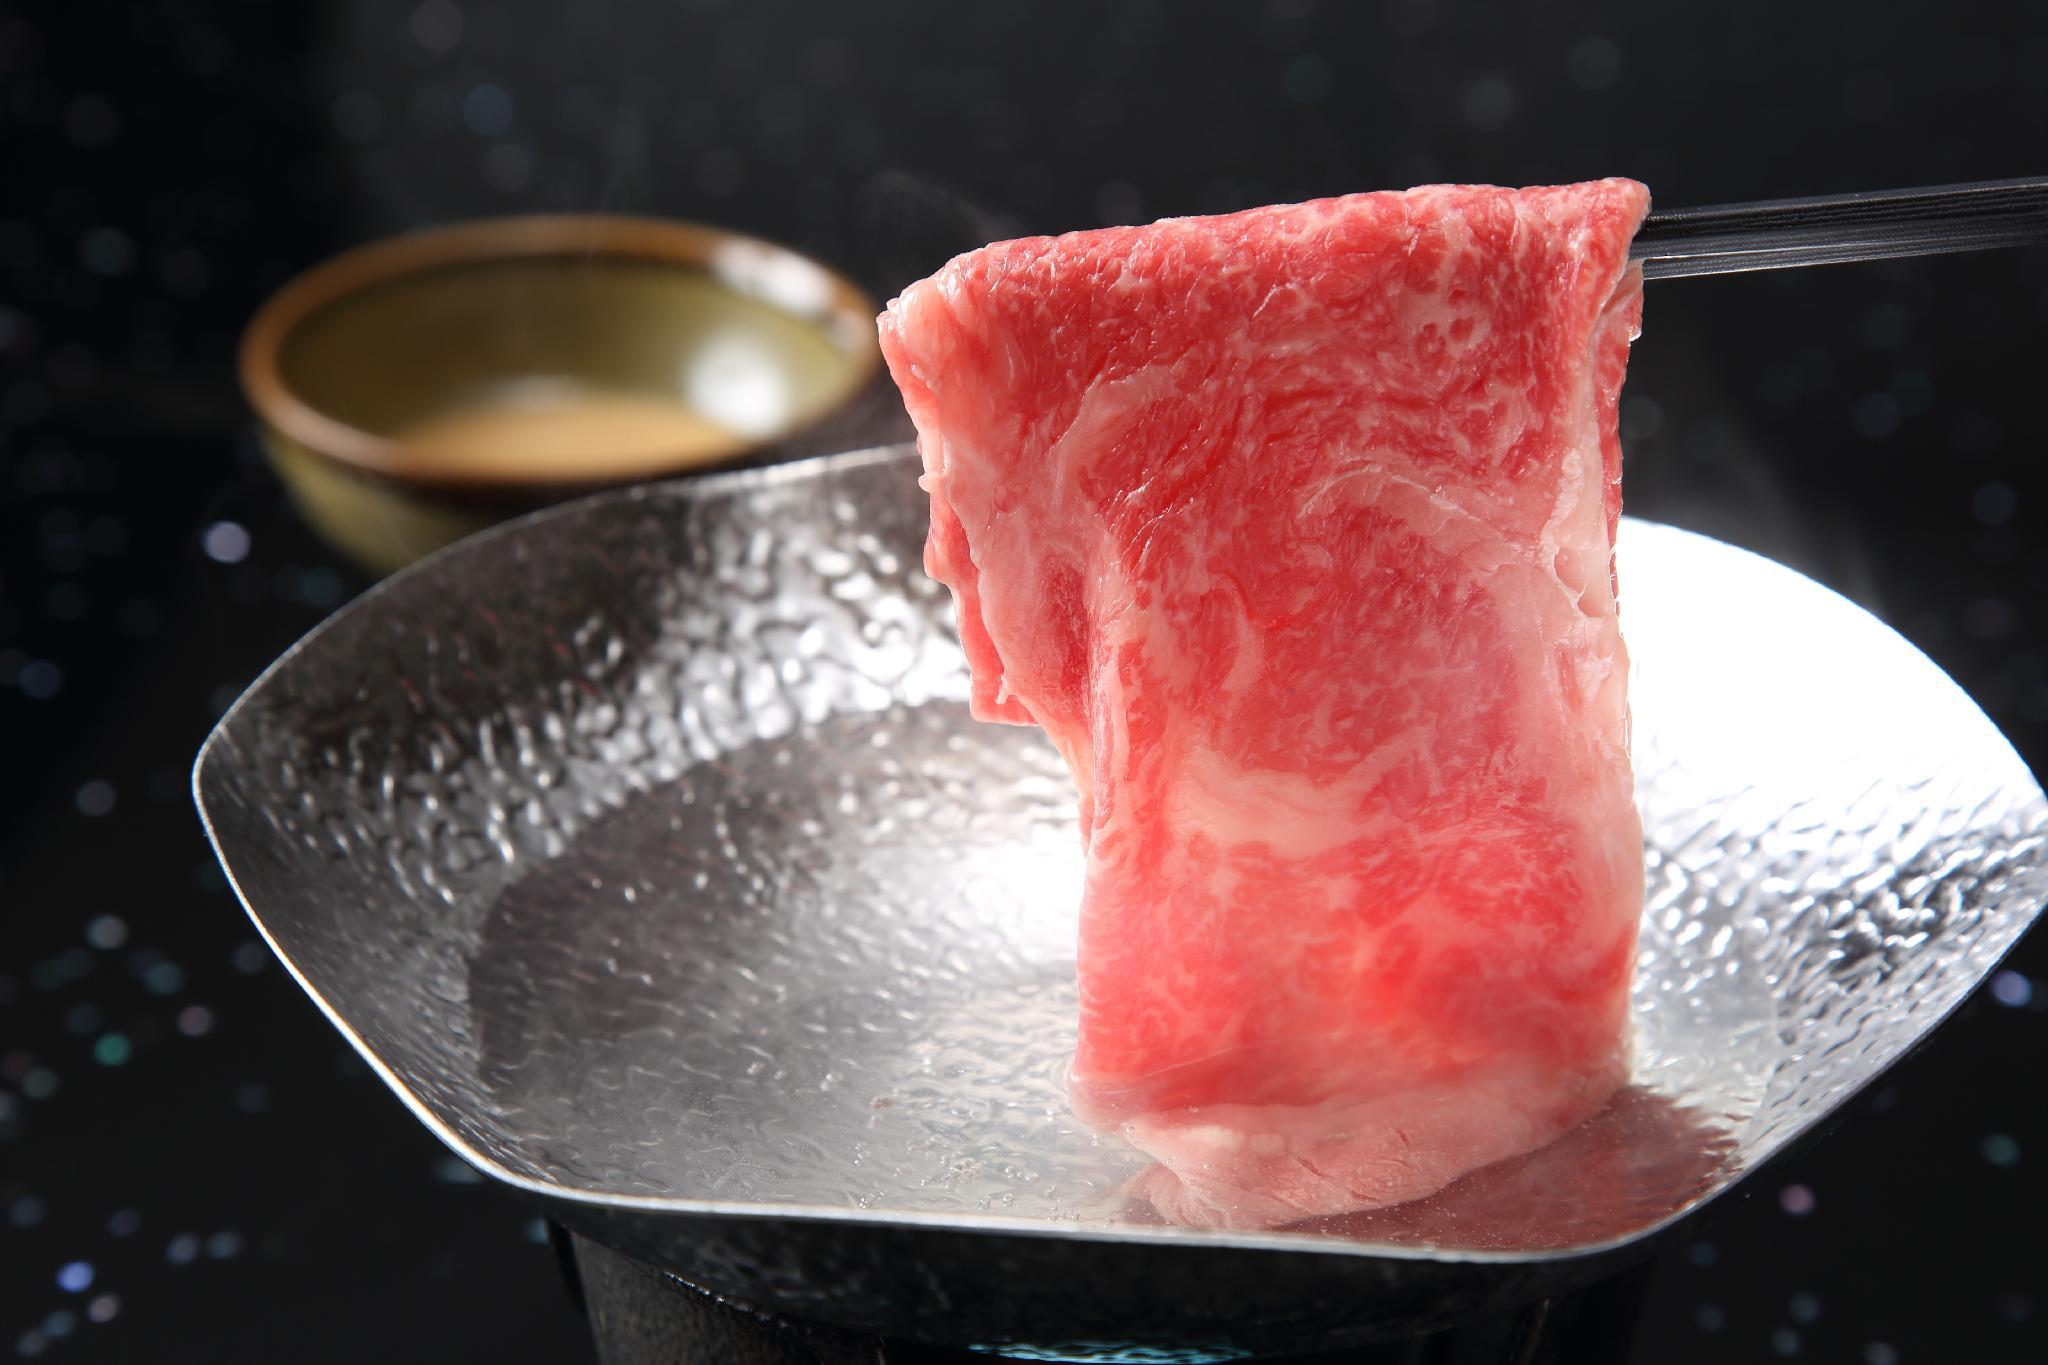 Kamar Superior Bergaya Jepang – Termasuk Sarapan, Makan Malam Shabushabu dan Steak Daging Sapi Kobe (Superior Japanese Style Room - Kobe Beef Steak, Shabushabu Dinner and Breakfast Included)